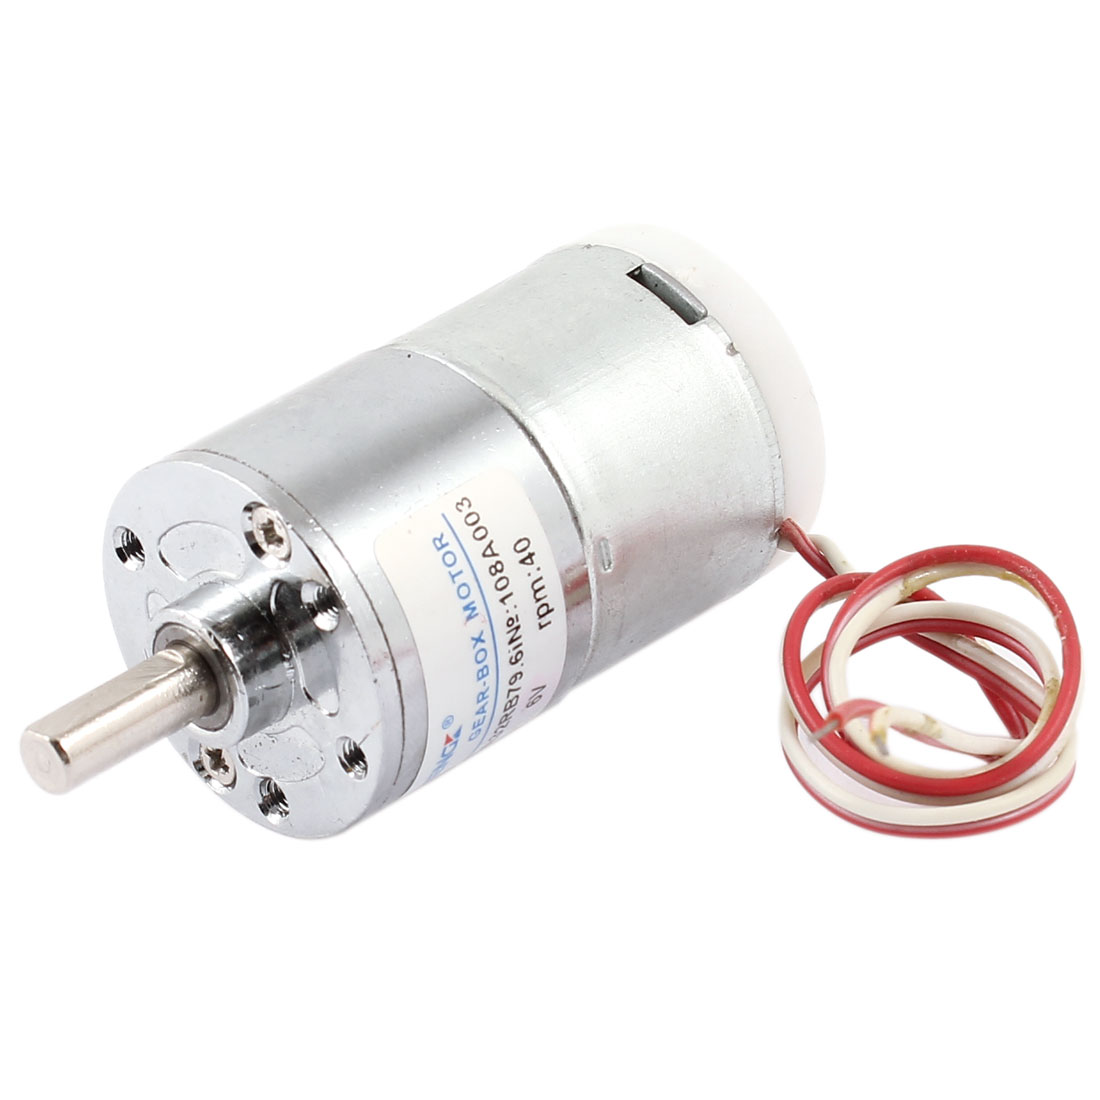 DC 6V 3500RPM 6mm Shaft Dia Speed Reduce Wired Metal Electric Geared Box Motor